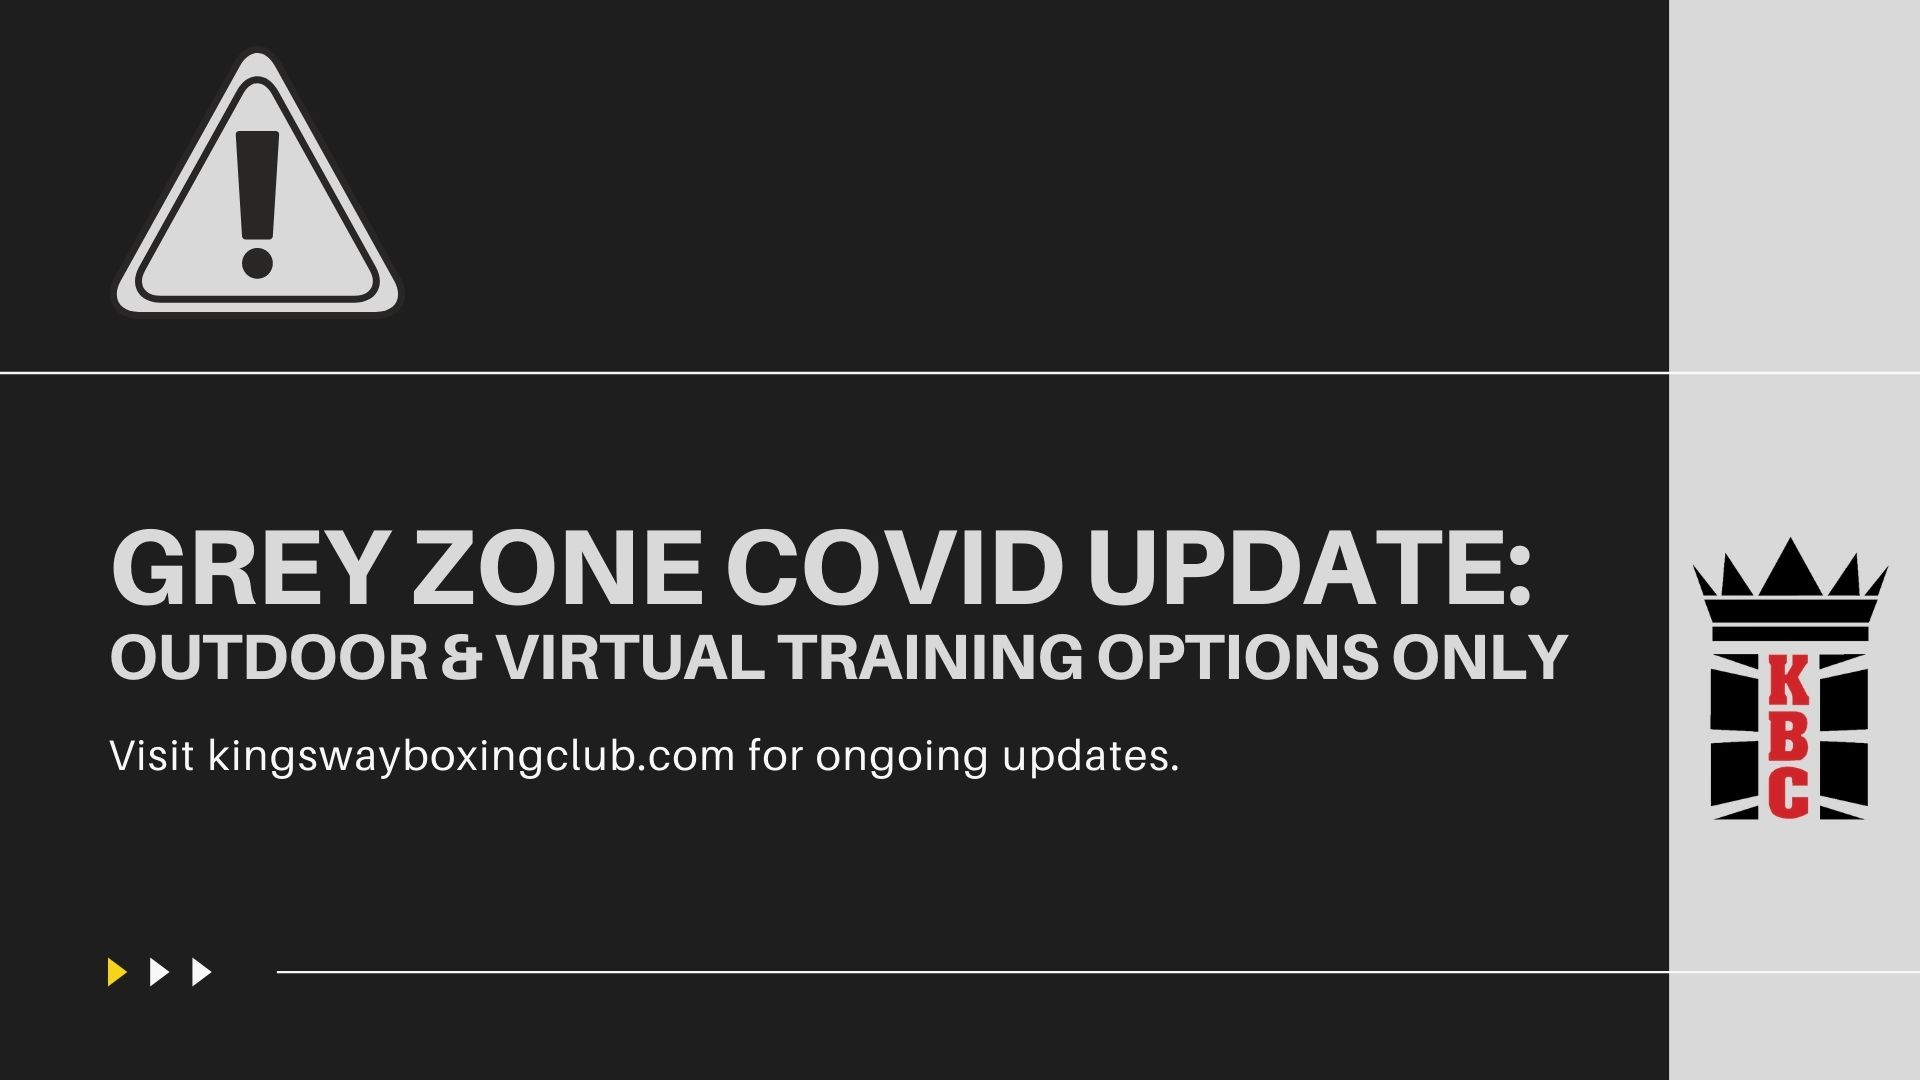 ⚠️ [COVID-19 UPDATE] GREY ZONE RESTRICTIONS: Virtual Training Only